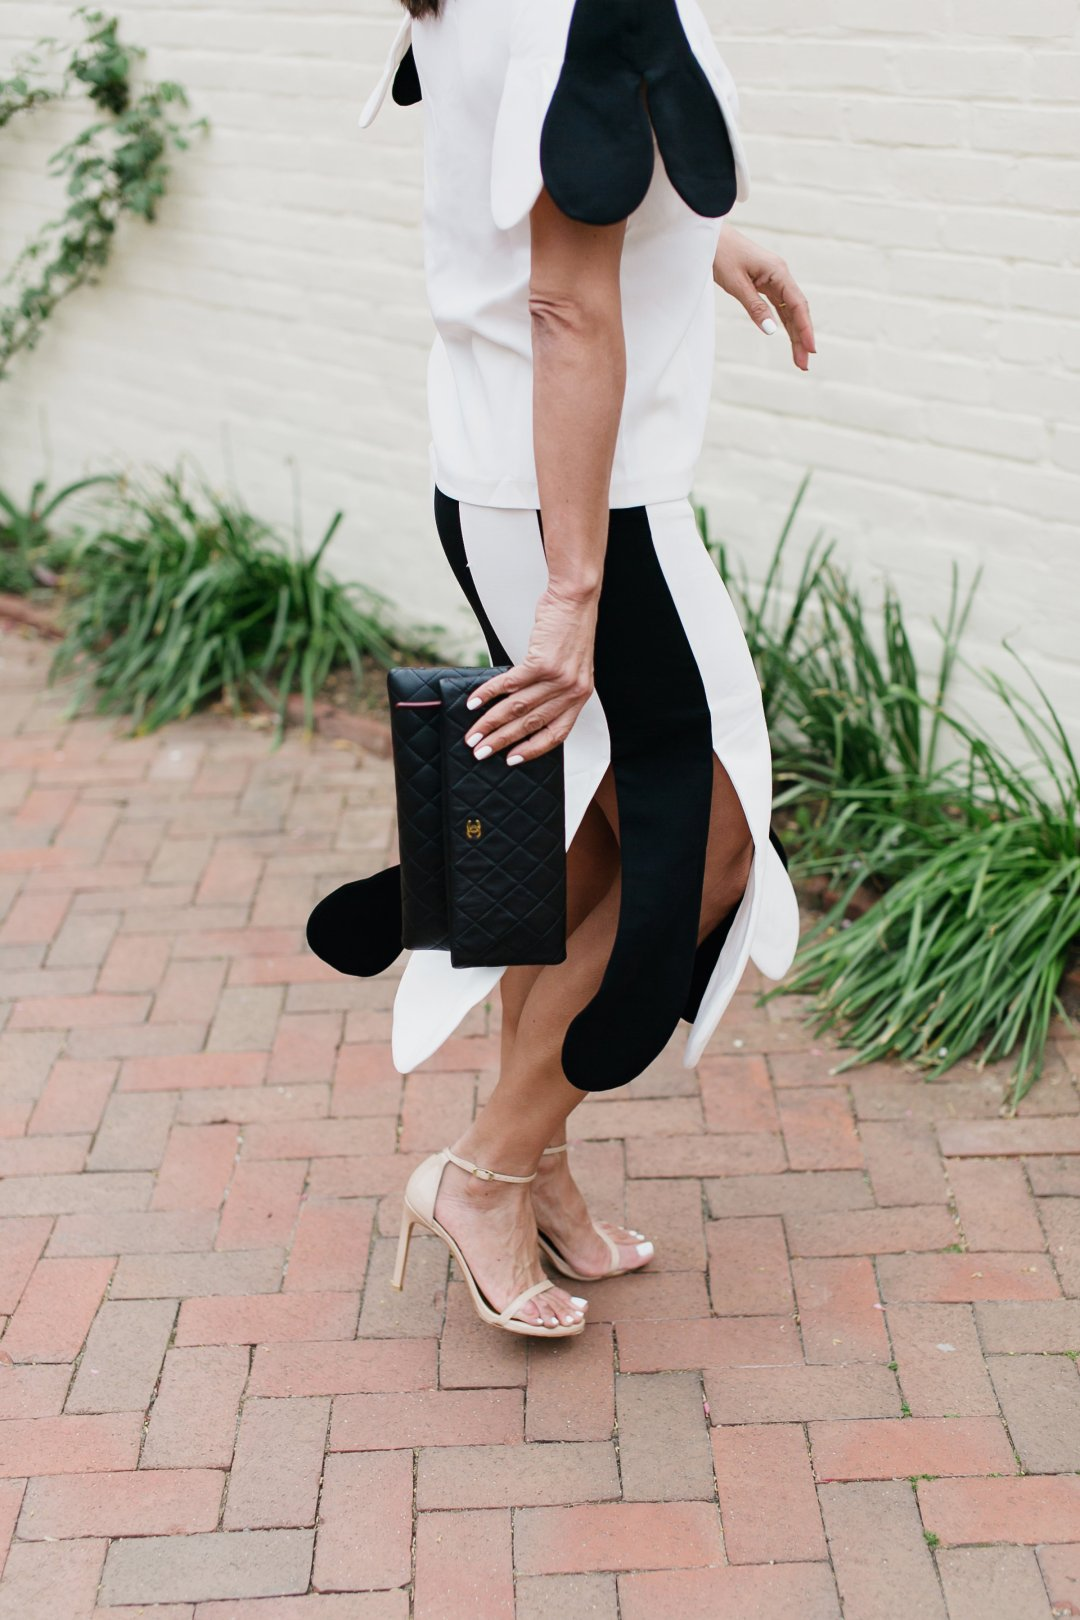 Vb X Target Black And White With A Spring Petal Twist Simply Sylvia Skirt There Is Something Very Chic About Simple Outfit Color Combo Think Tuxedos For Example I Also Love Classic Silhouettes